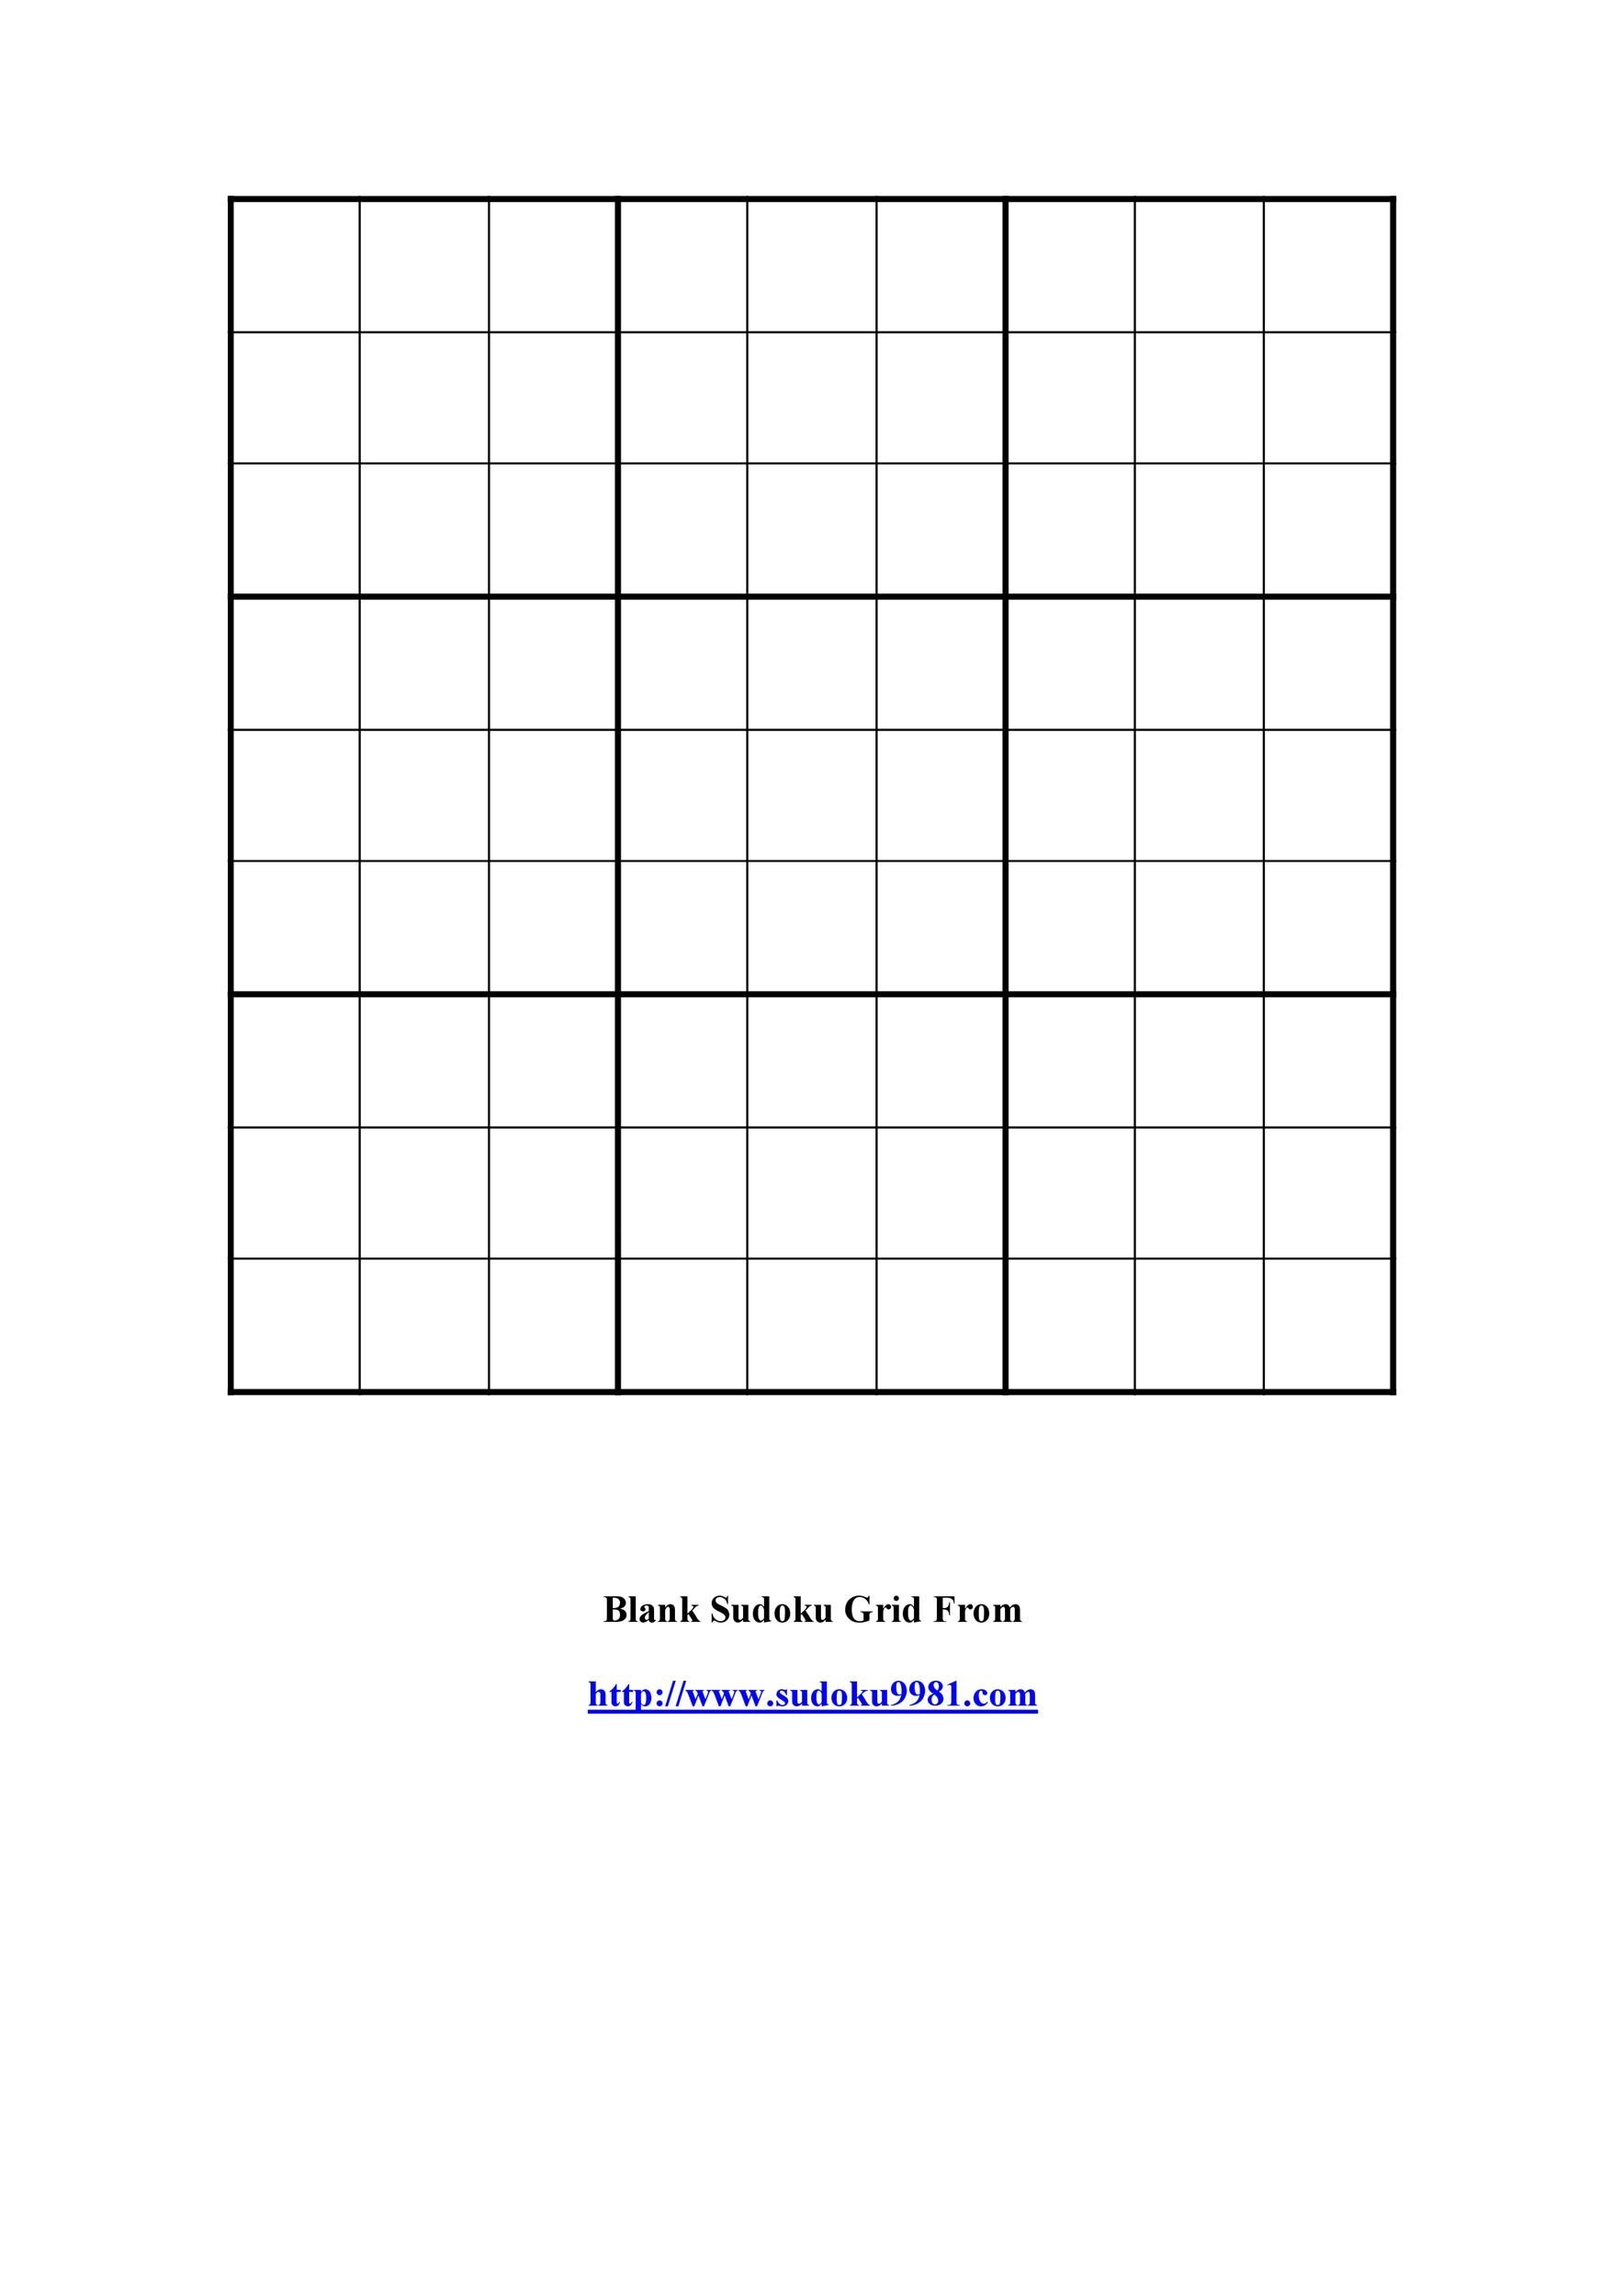 image regarding Blank Sudoku Grid Printable named 50 Blank Sudoku Grids [Free of charge Printable] ᐅ Template Lab